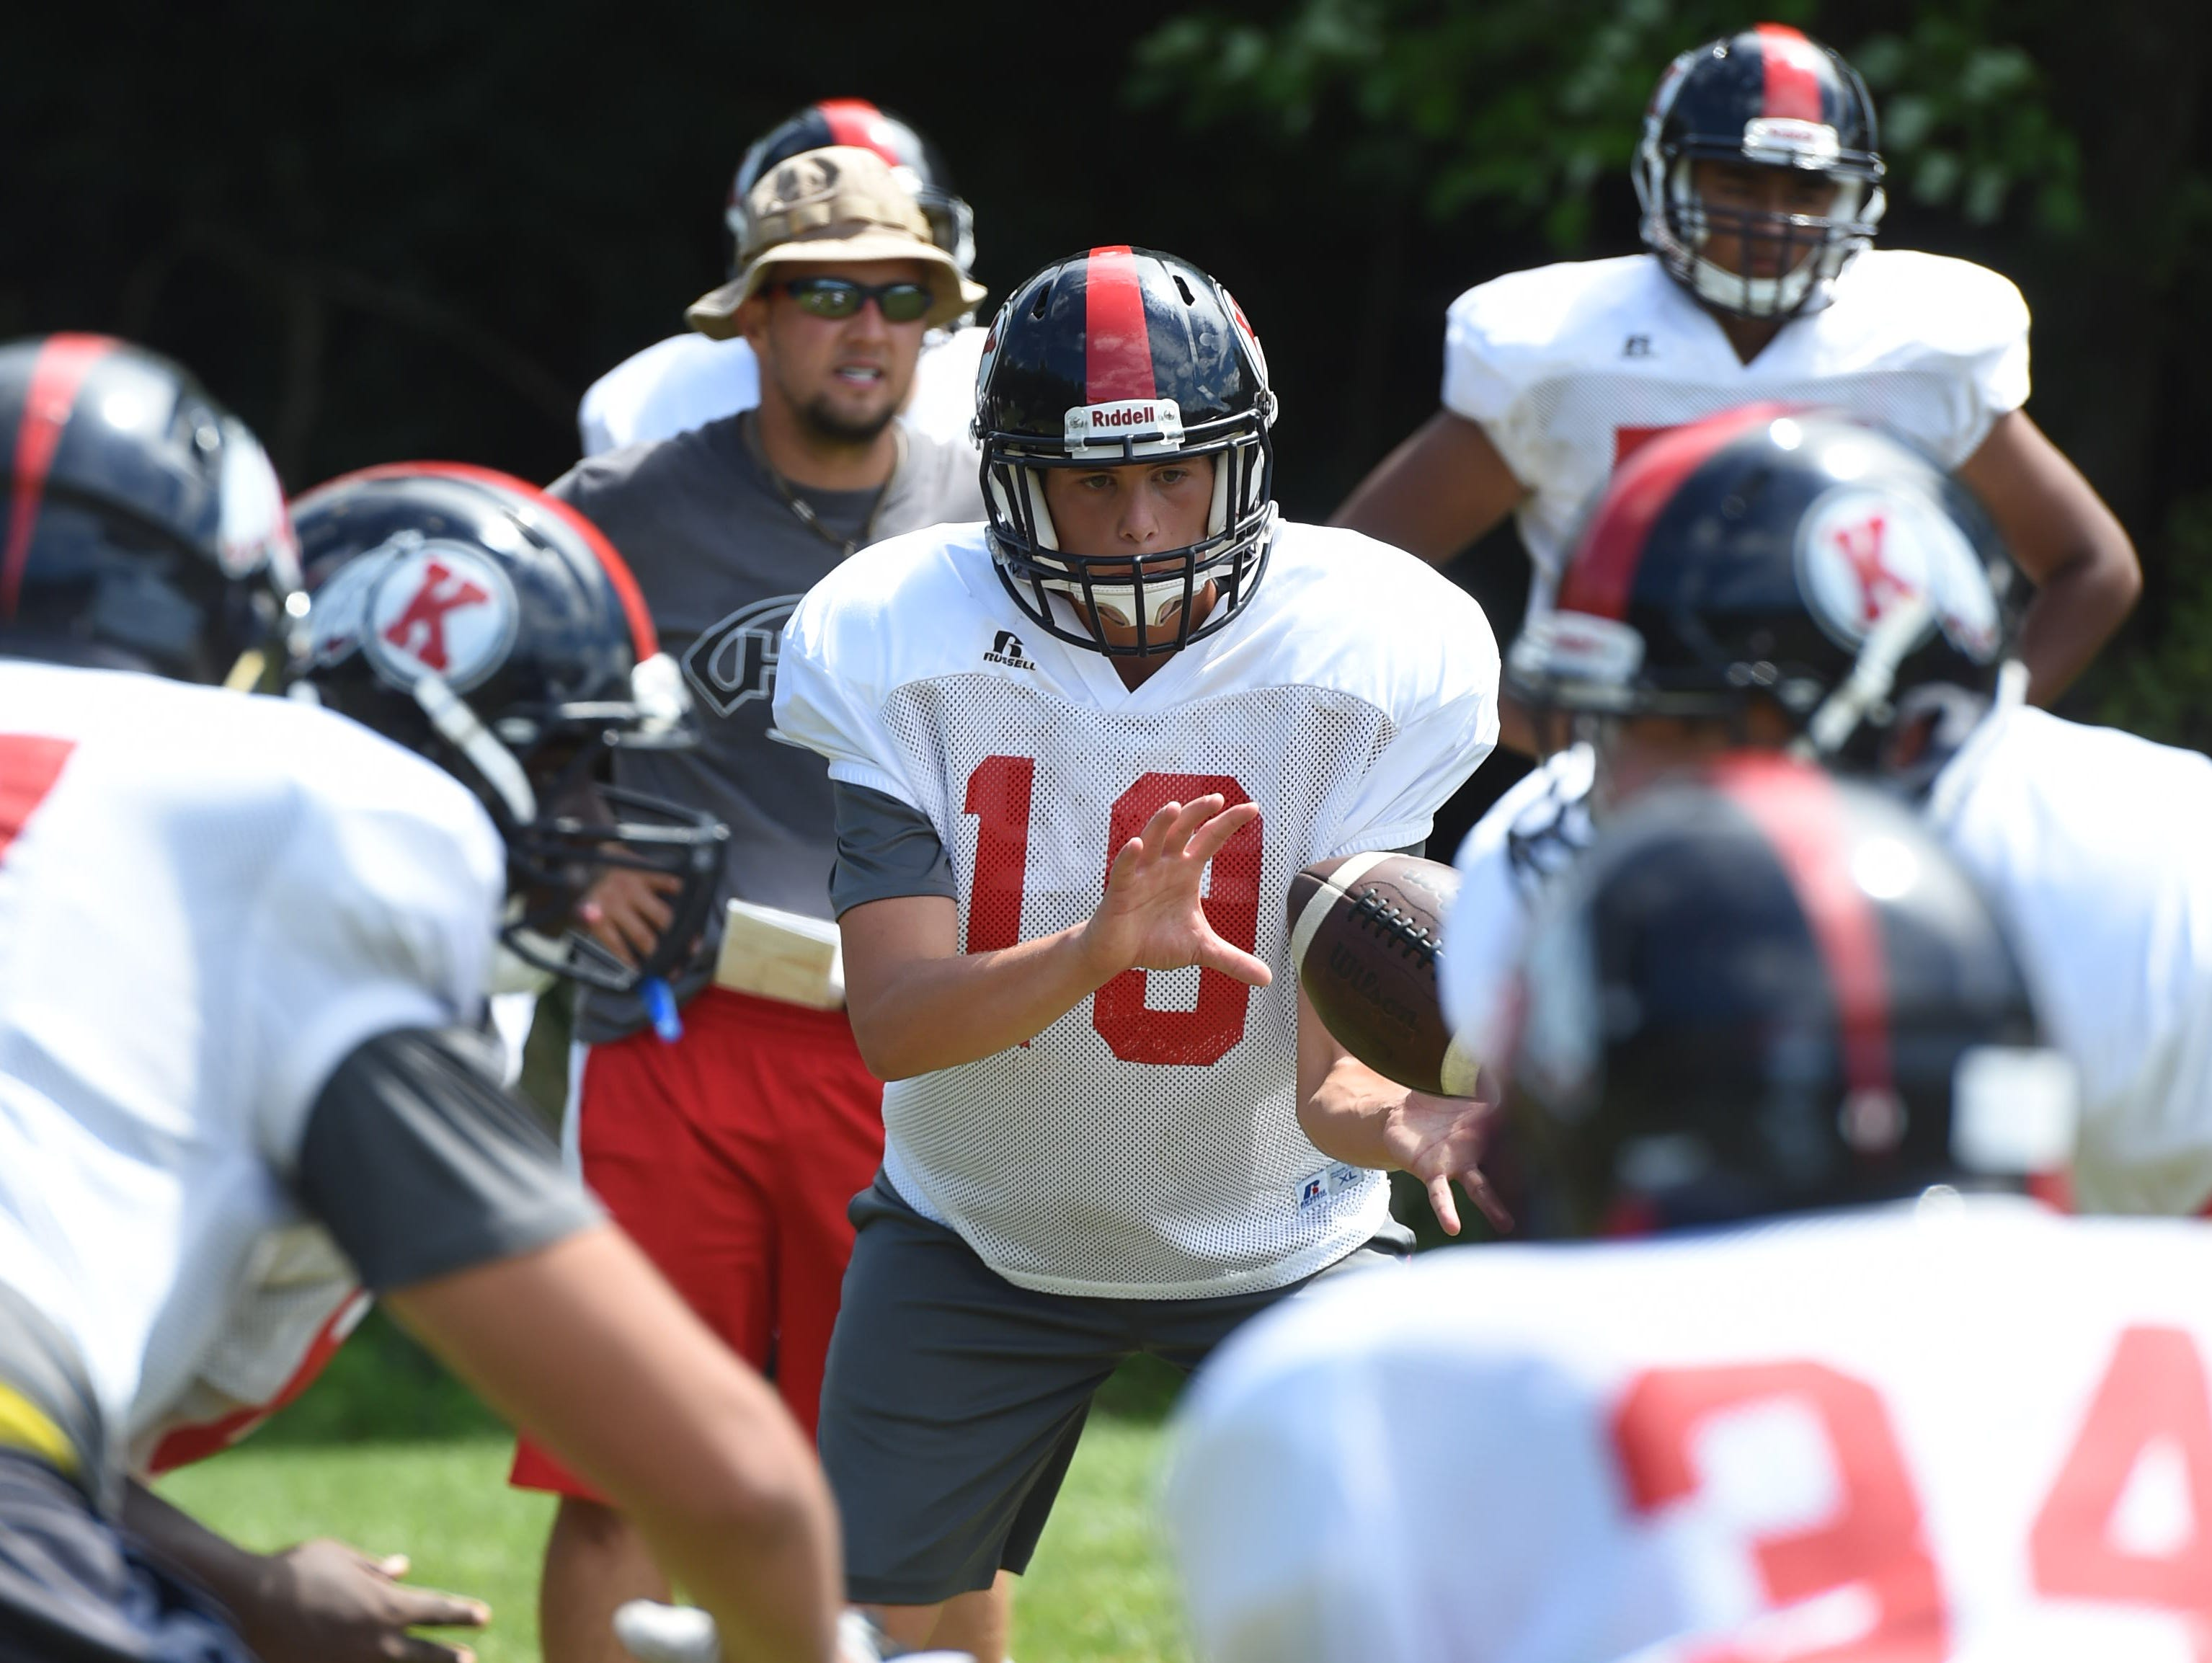 Roy C. Ketcham's Sam Vivace receives the ball during preseason practice on Wednesday. Vivace, a senior, was practicing offensive drills. Ketcham coach Bryan Hogan has not yet decided on his quarterback.